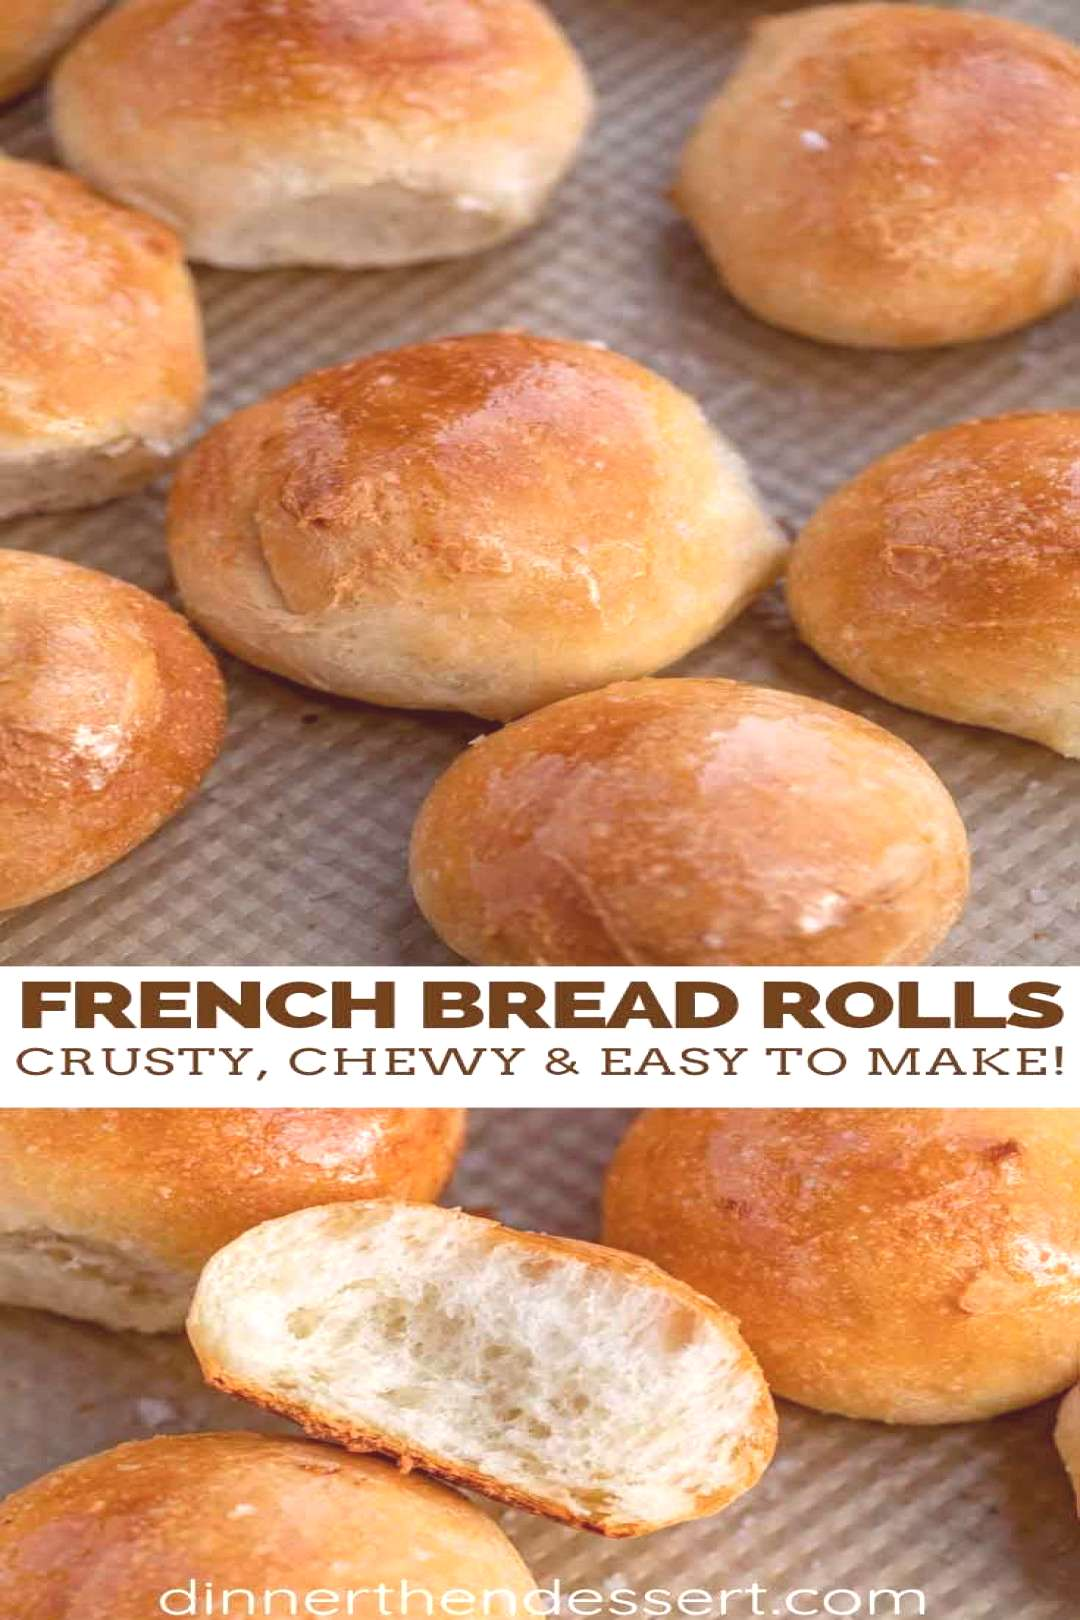 French Bread Rolls are the PERFECT yeast bread to serve on the weekend because theyre warm and flu